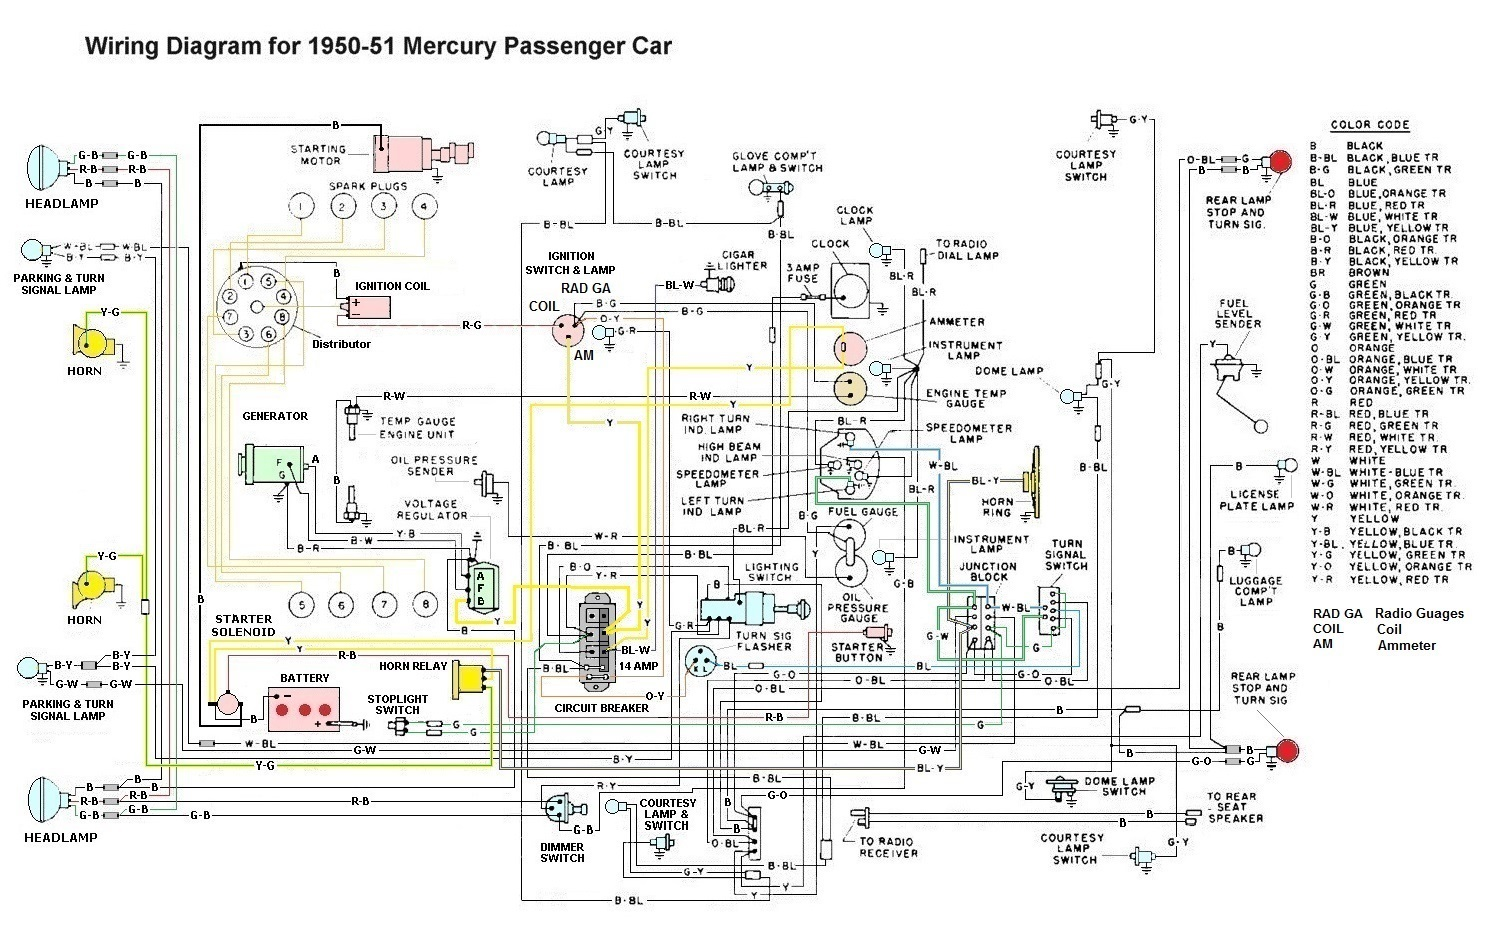 1956 Mercury Wiring Diagram - Wiring Diagram